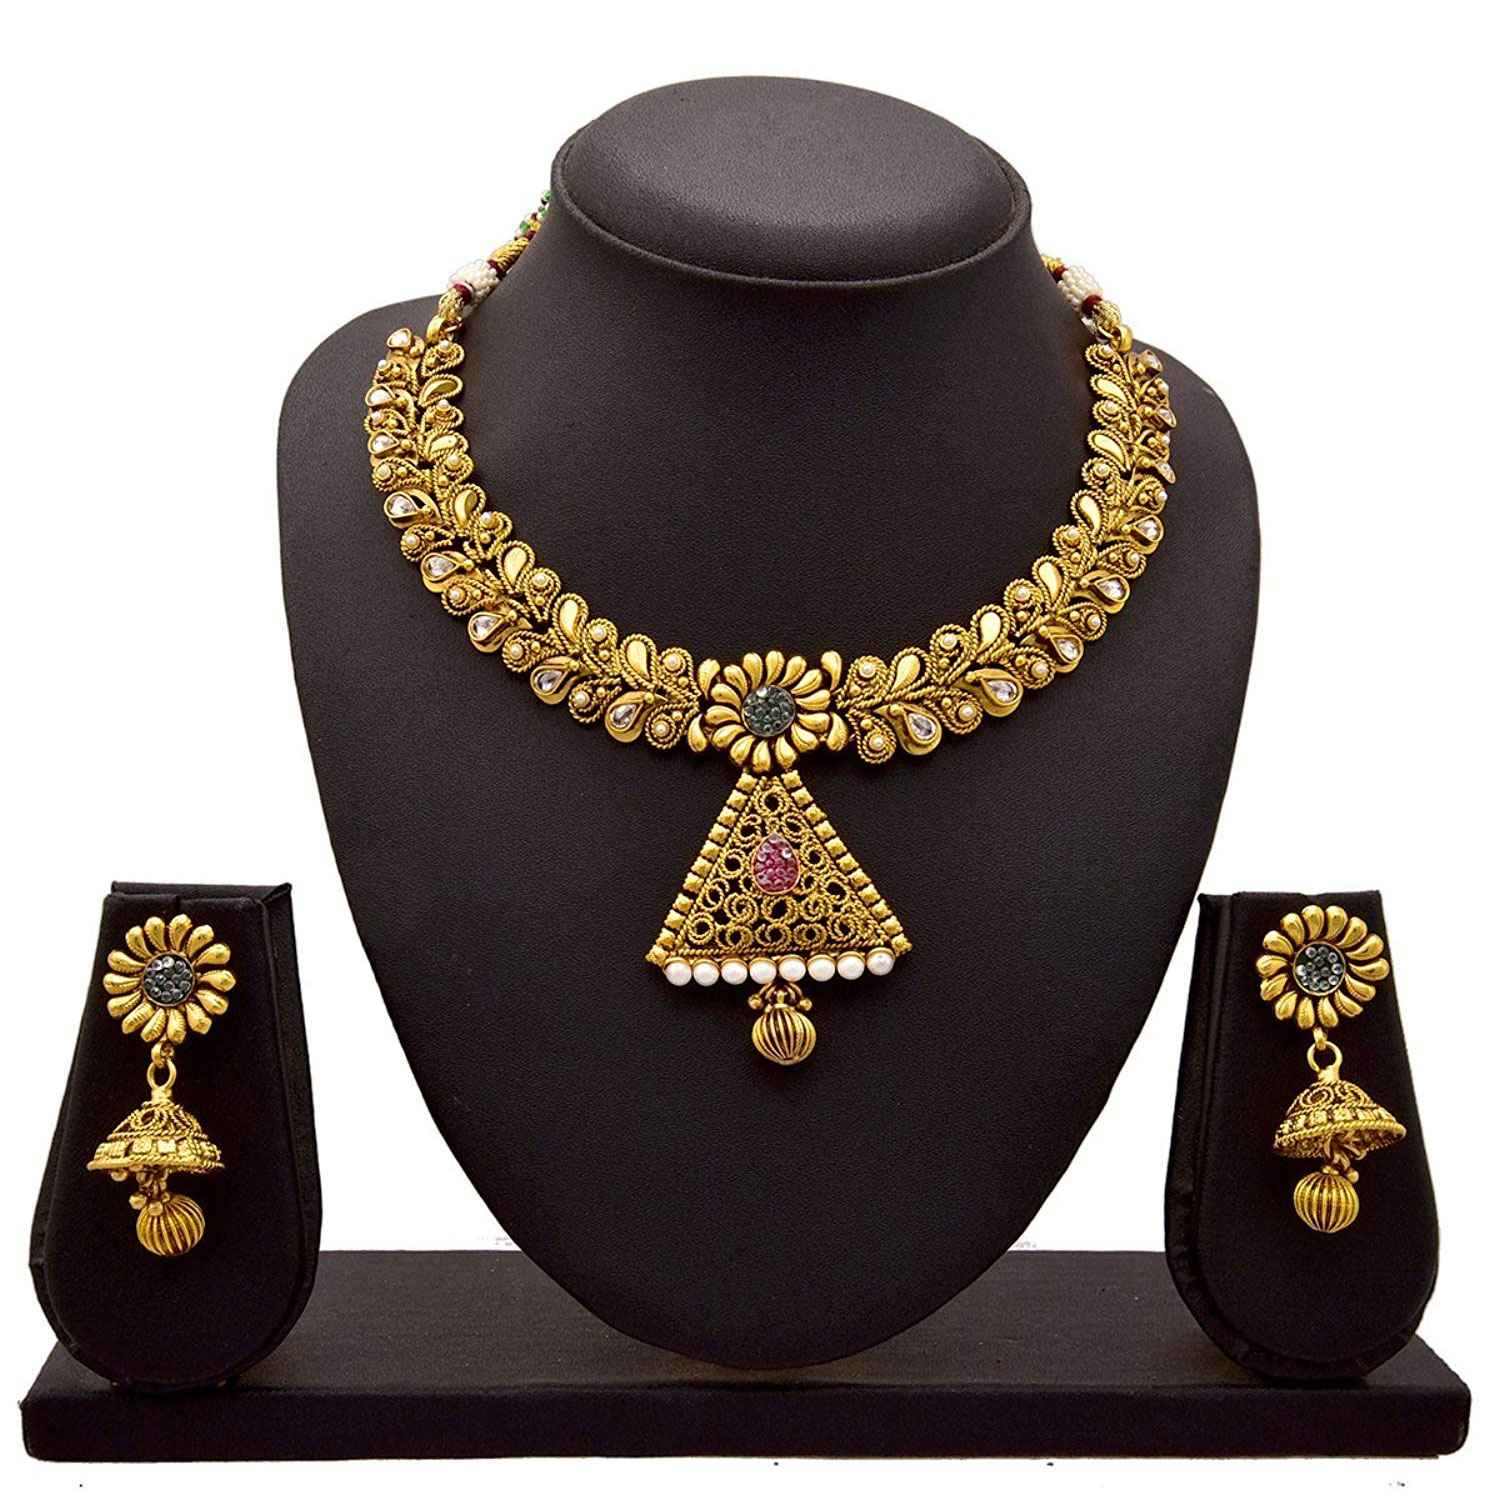 JFL-Jewellery For Less Floral Flower One Gram Gold Plated Necklace Set Studded With Pink, Green Stones Diamonds For Women And Girls